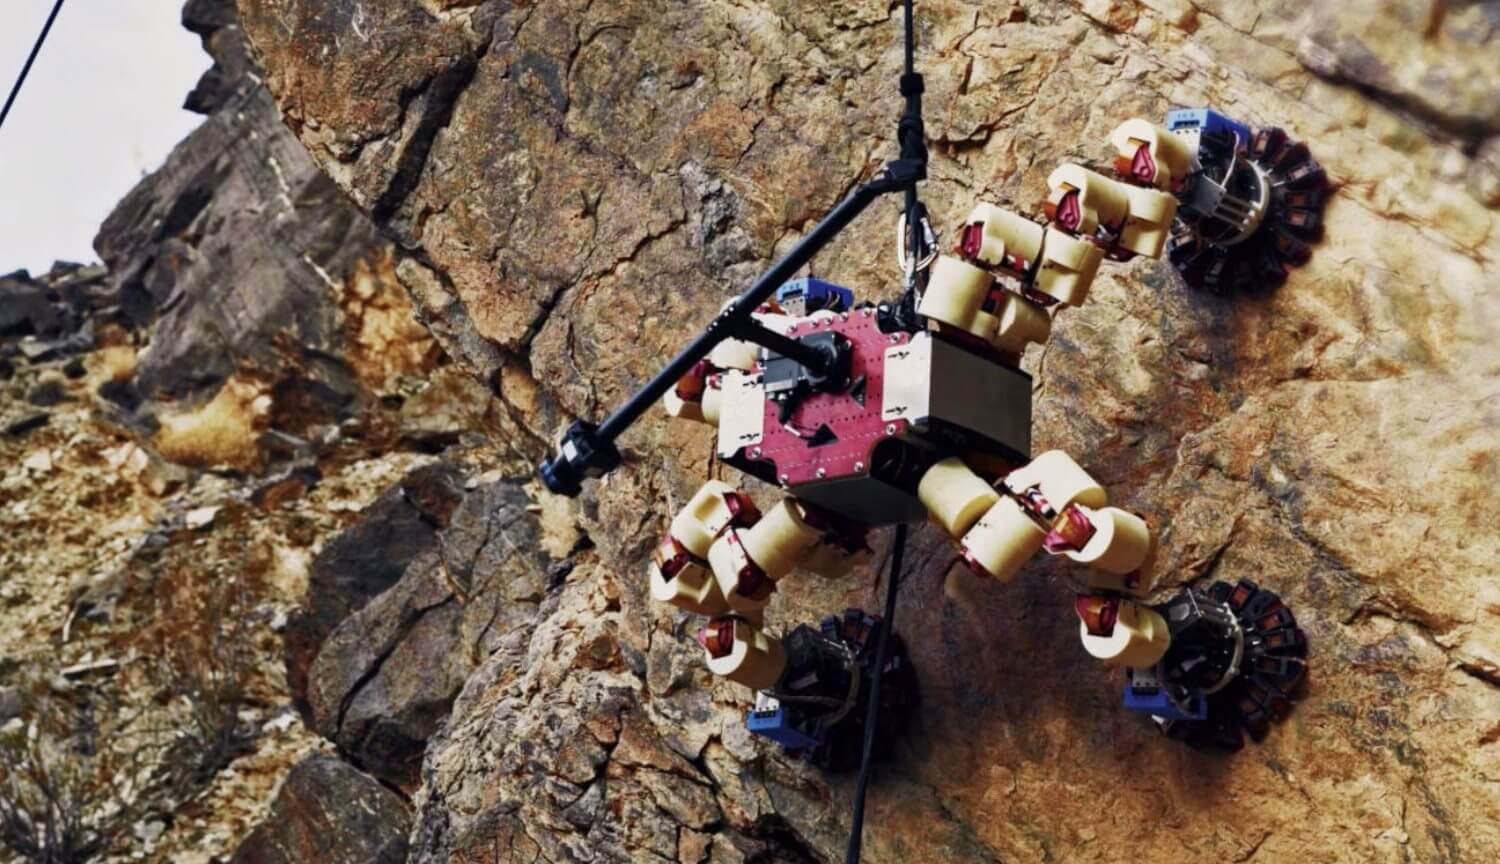 Robotic climbers on Mars. Why do they need?